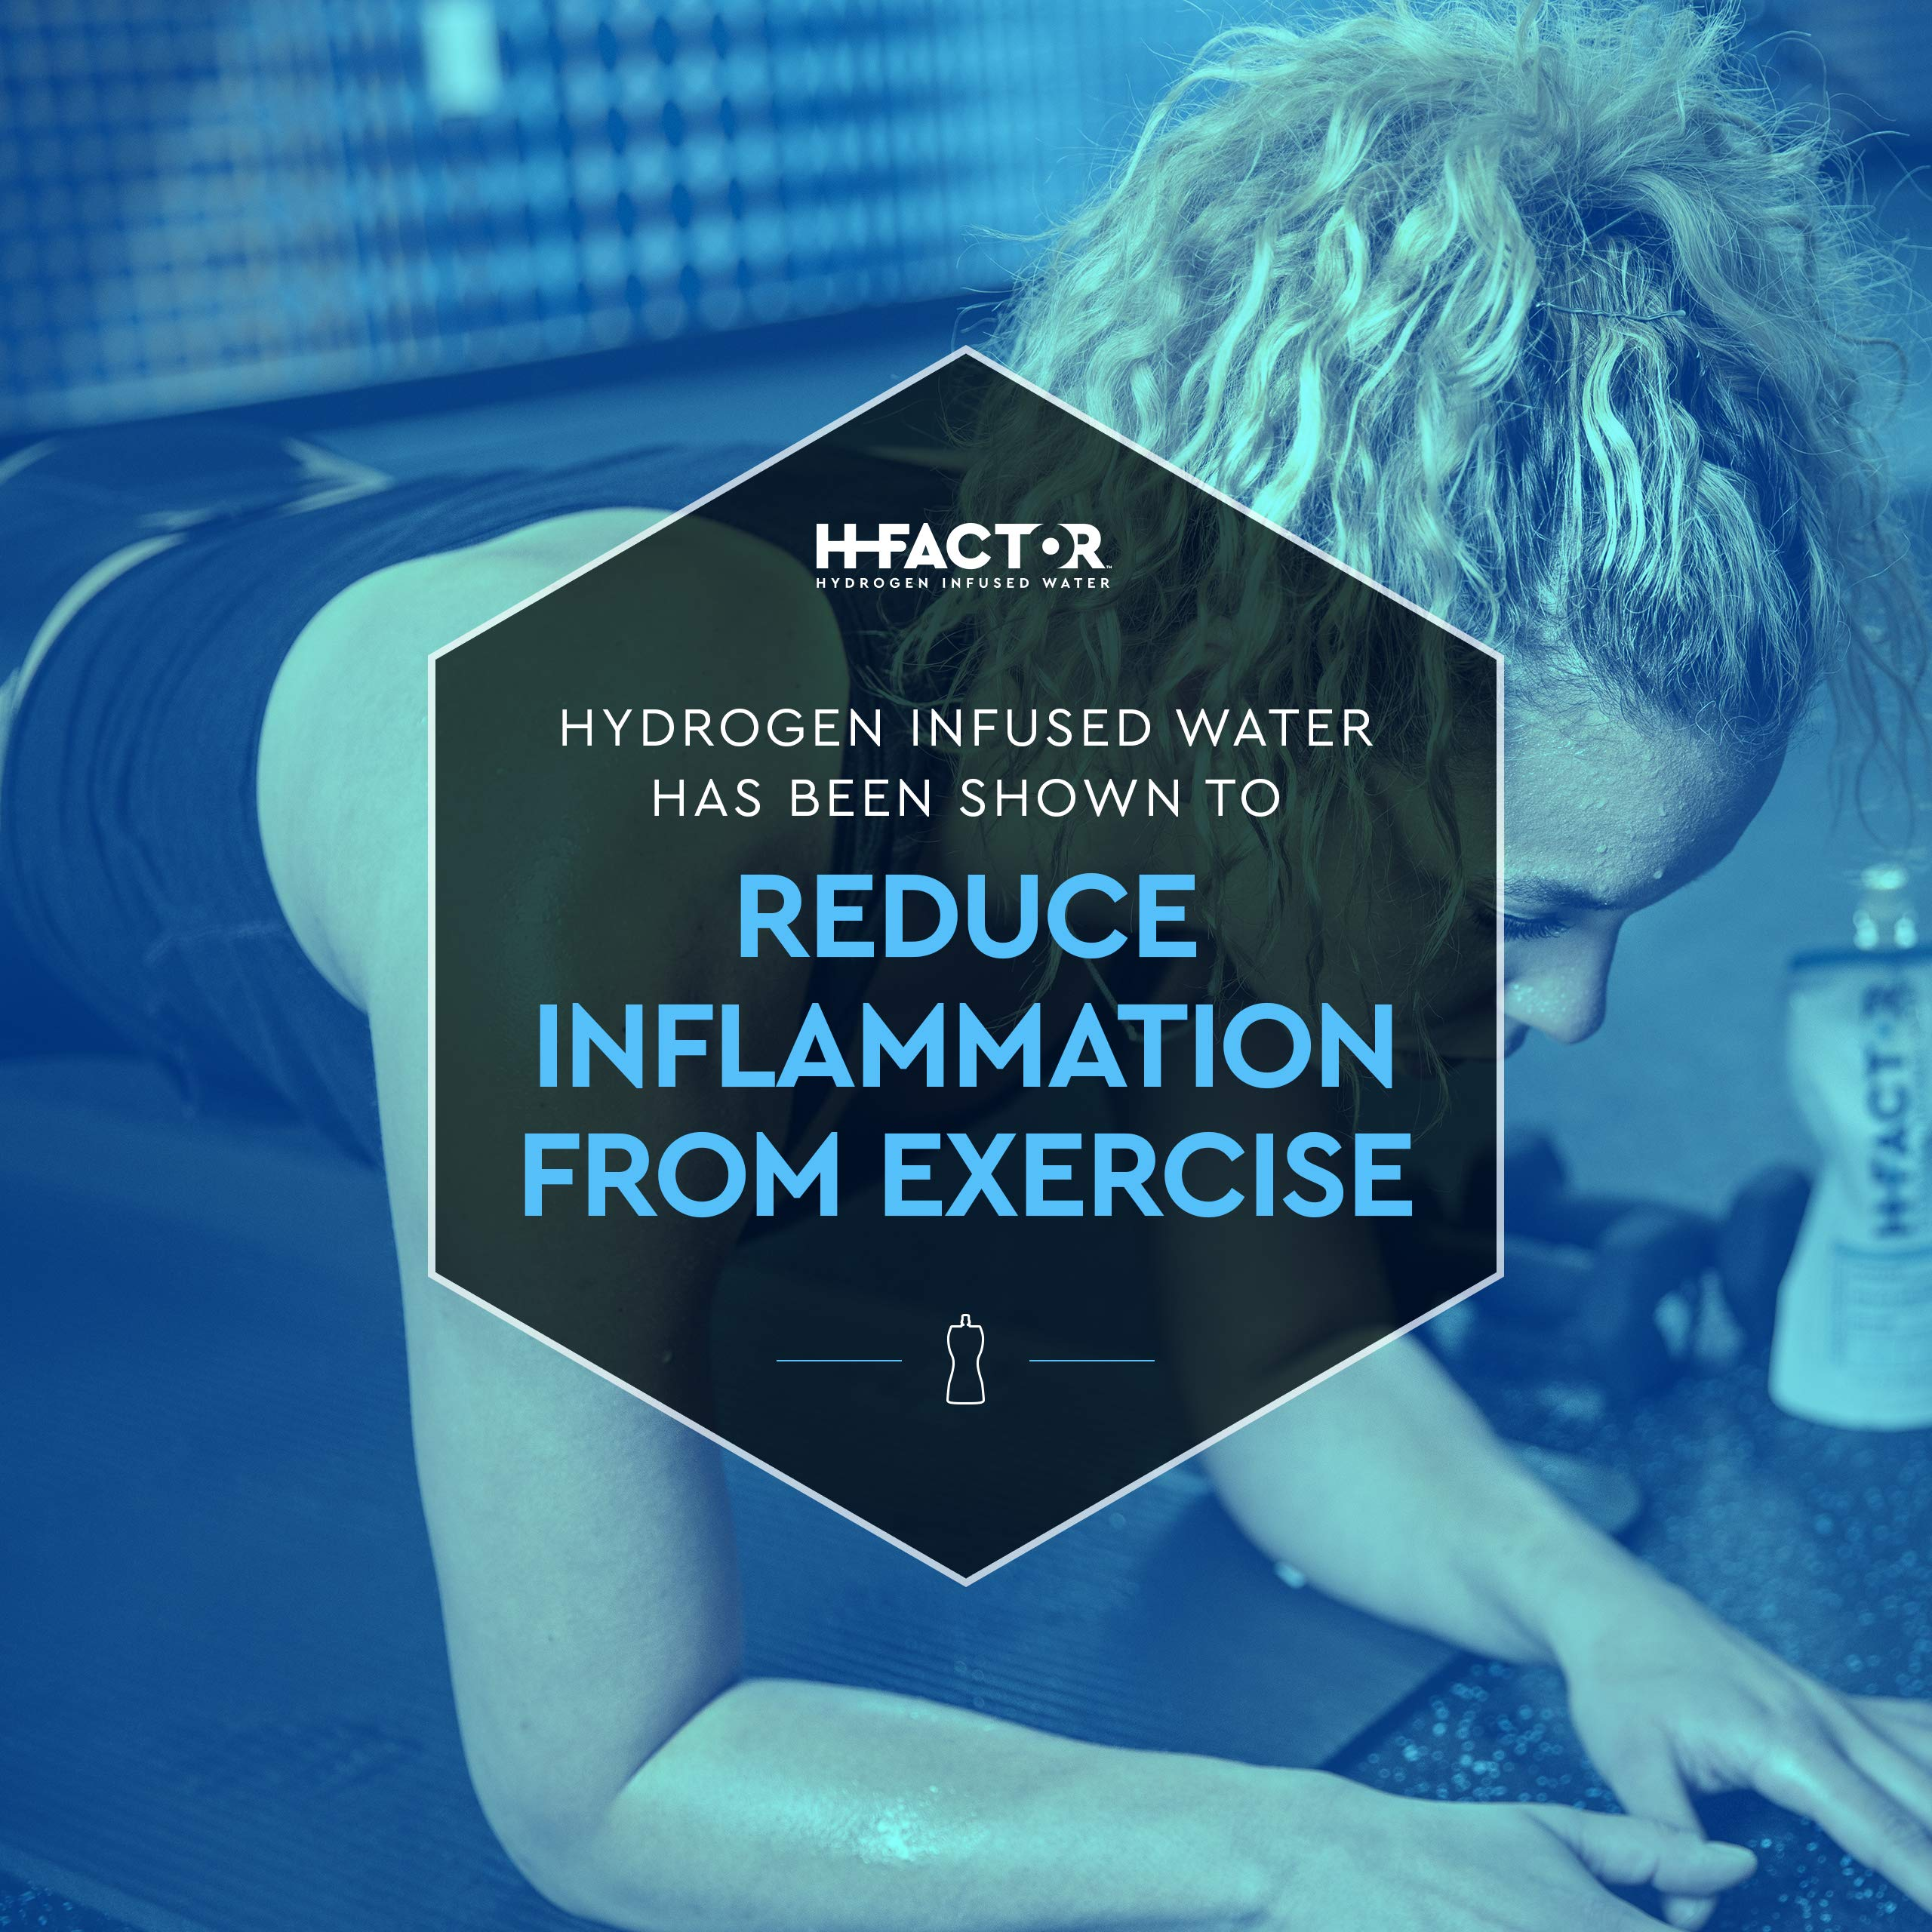 HFactor Hydrogen Infused Pure Drinking Water, Pre Or Post Workout Recovery Drink, 11 Fl Oz (24 Pack), Molecular Hydrogen Supports Athletic Performance Delivers Antioxidant, Packaging May Vary by H Factor (Image #4)